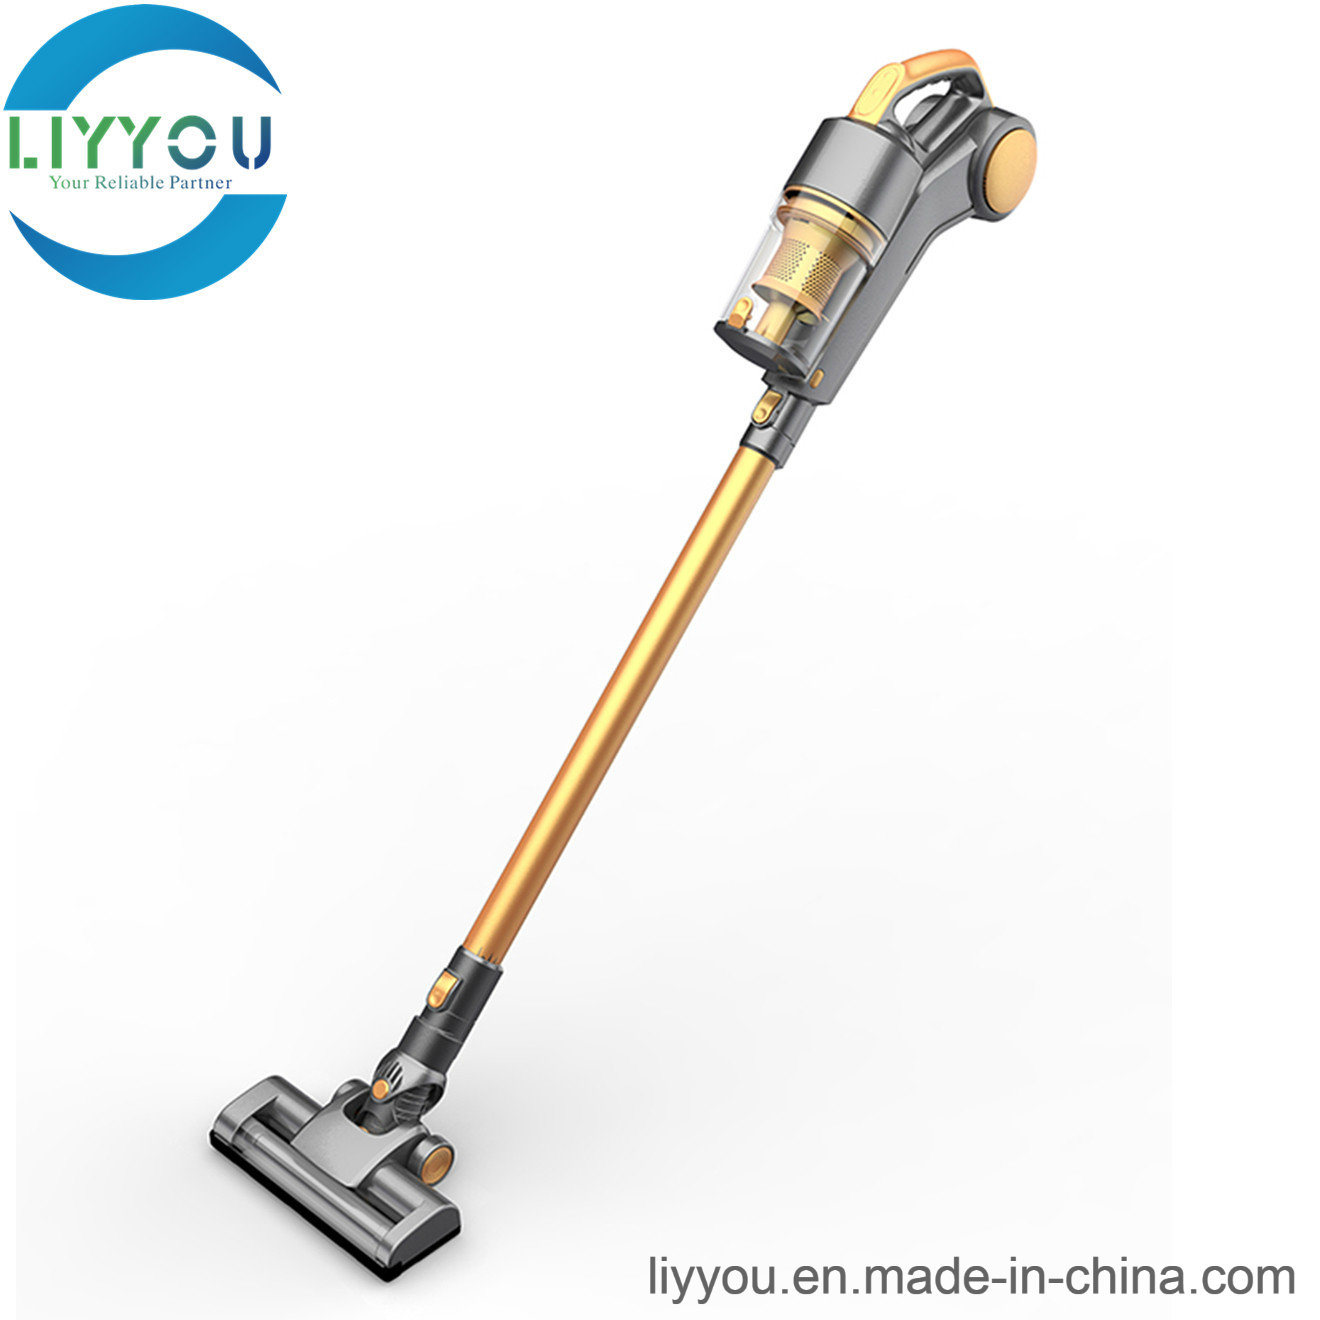 Car Wash Vacuum Cleaner >> Hot Item Ly1602 Cordless Hand Held Stick Cleaning Machine Home Use Car Wash Vacuum Cleaner